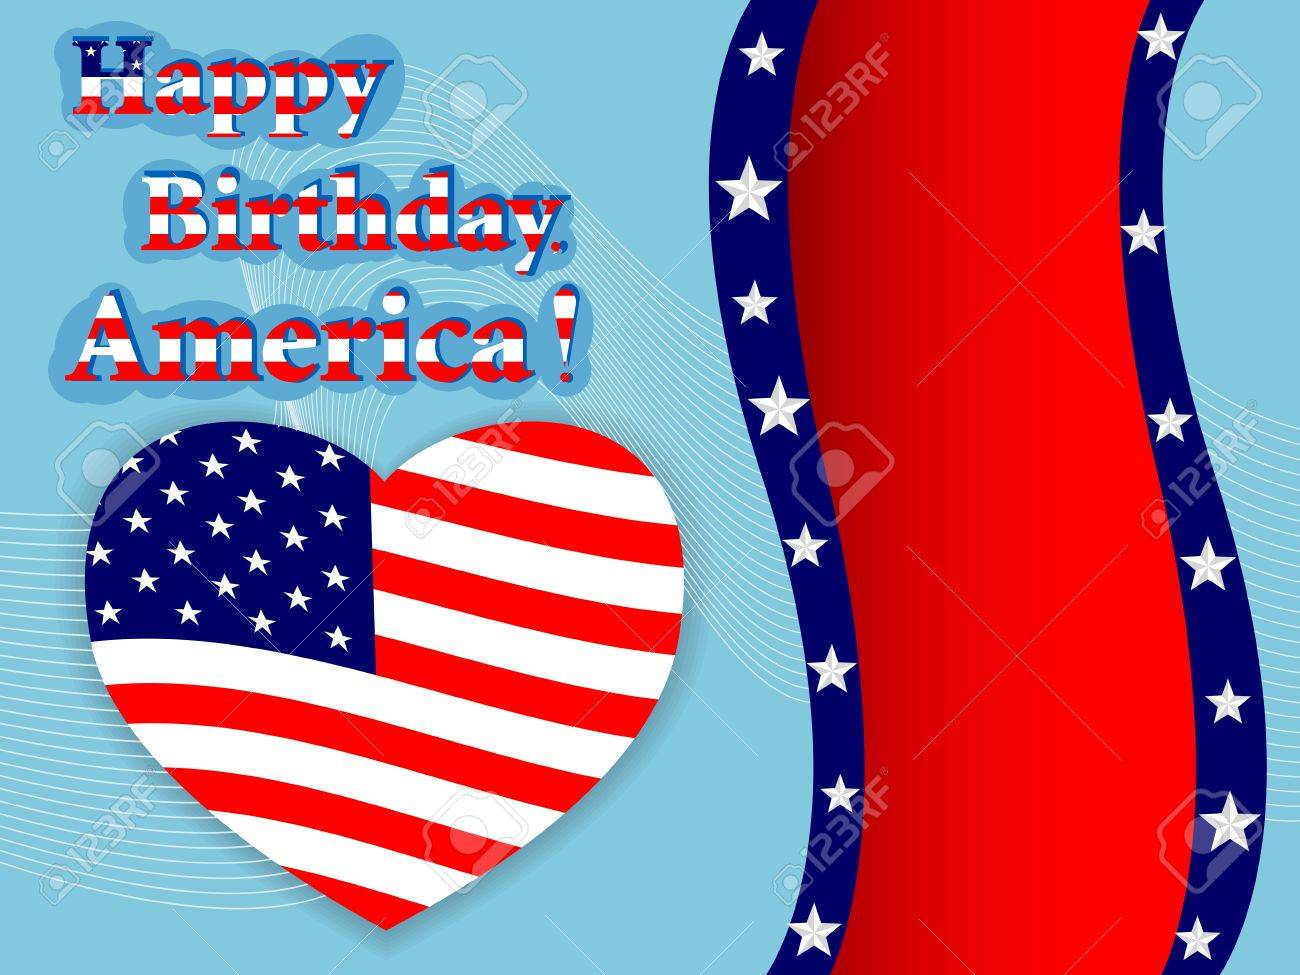 Independence Day American Flag Heart With Banner Royalty Free ...